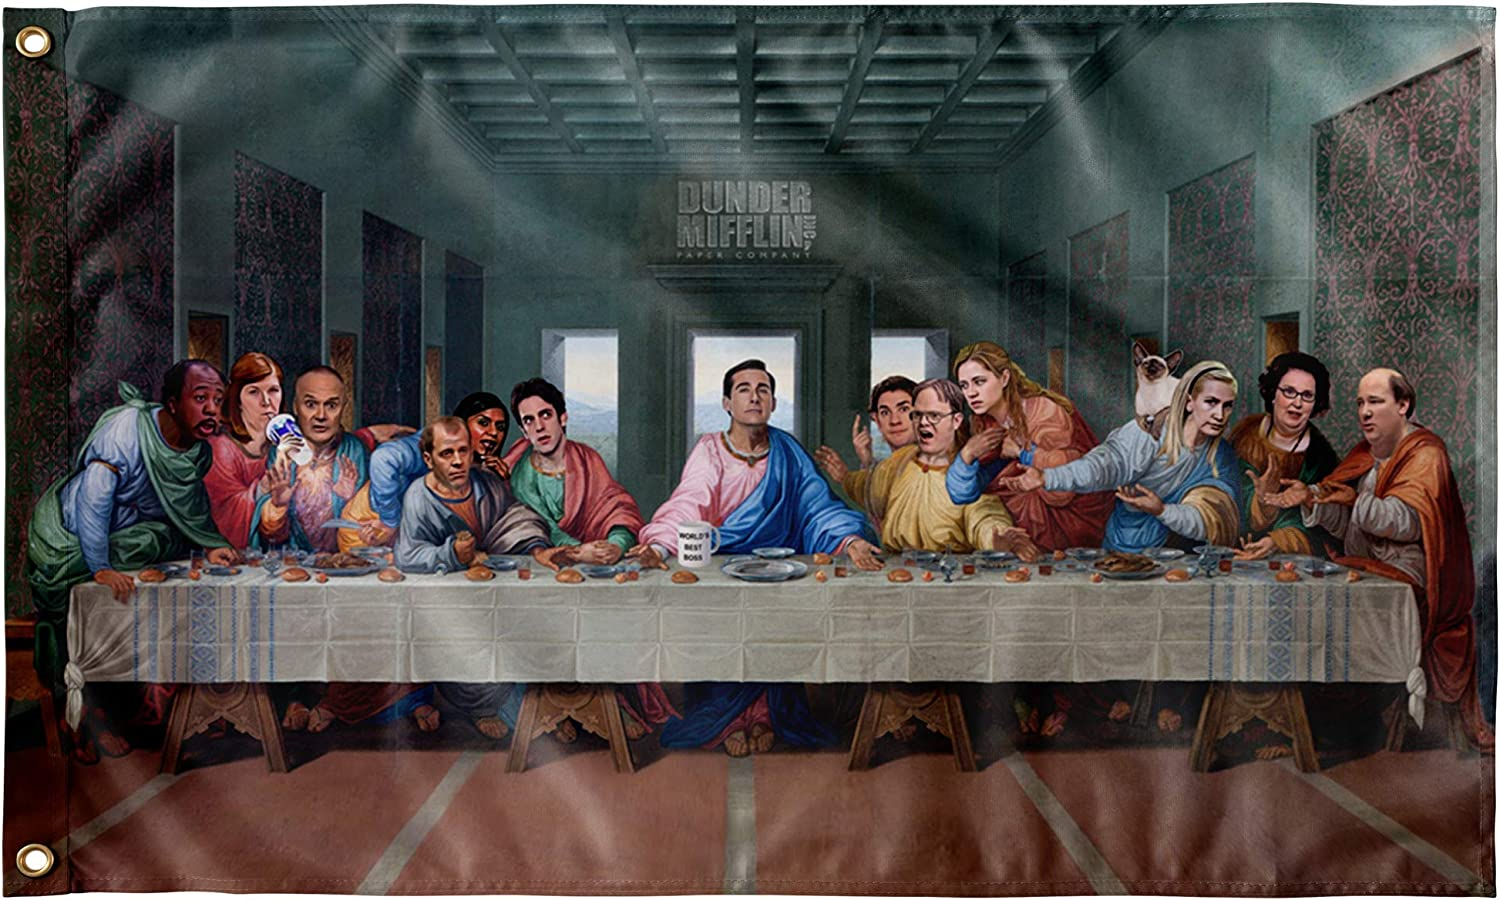 "The Last Supper at Dunder Mifflin Wall Flag - 60x36"" - Funny tapestry for college dorm - The Office TV Show Wall Art"